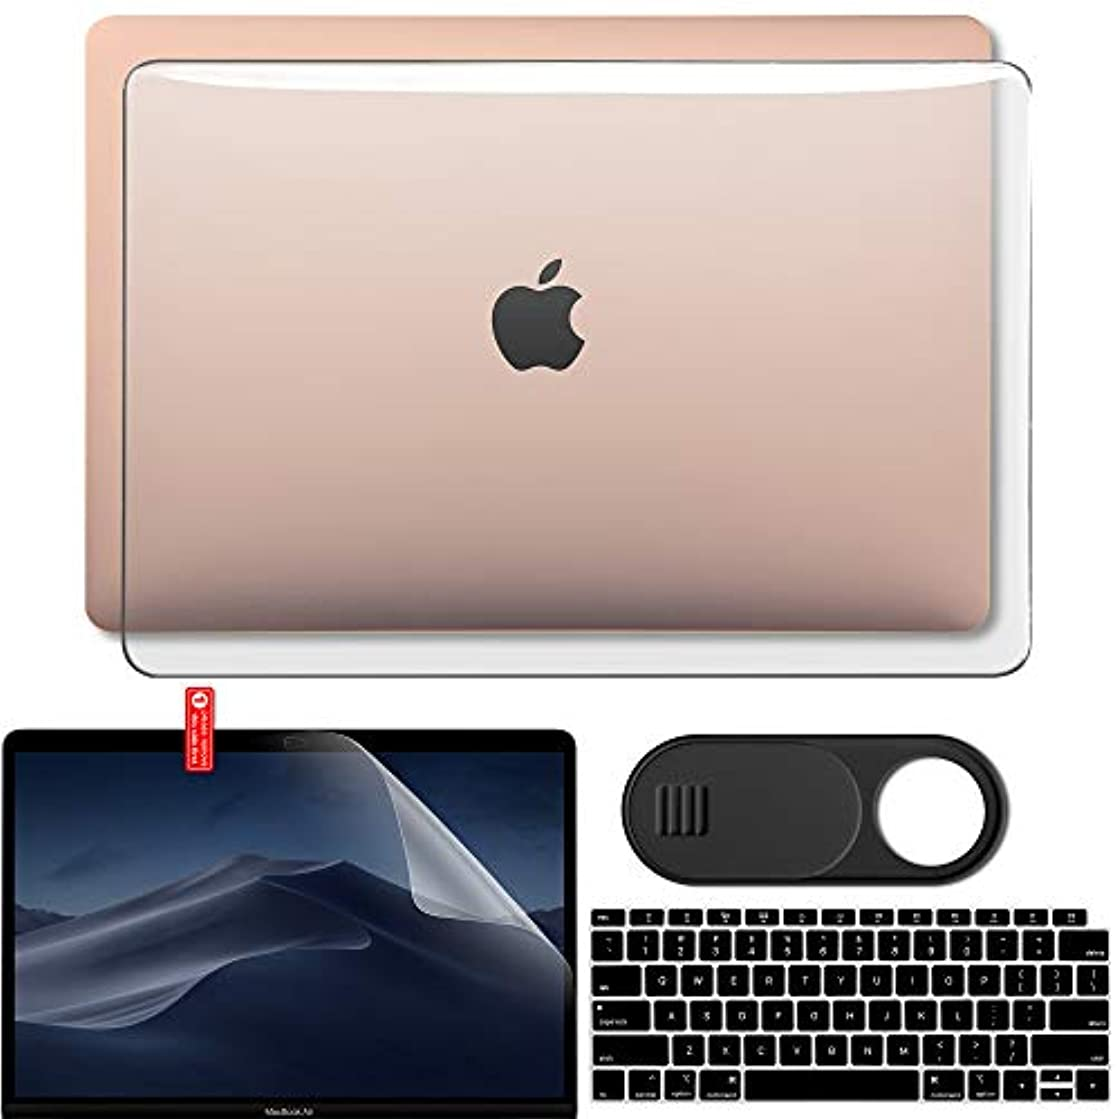 GMYLE MacBook Air 13 Inch Case 2018 Release A1932 with Touch ID Retina Display New Version Bundle, Plastic Hard Shell, Keyboard Cover, Privacy Webcam Cover Slide, Screen Protector Set, Crystal Clear